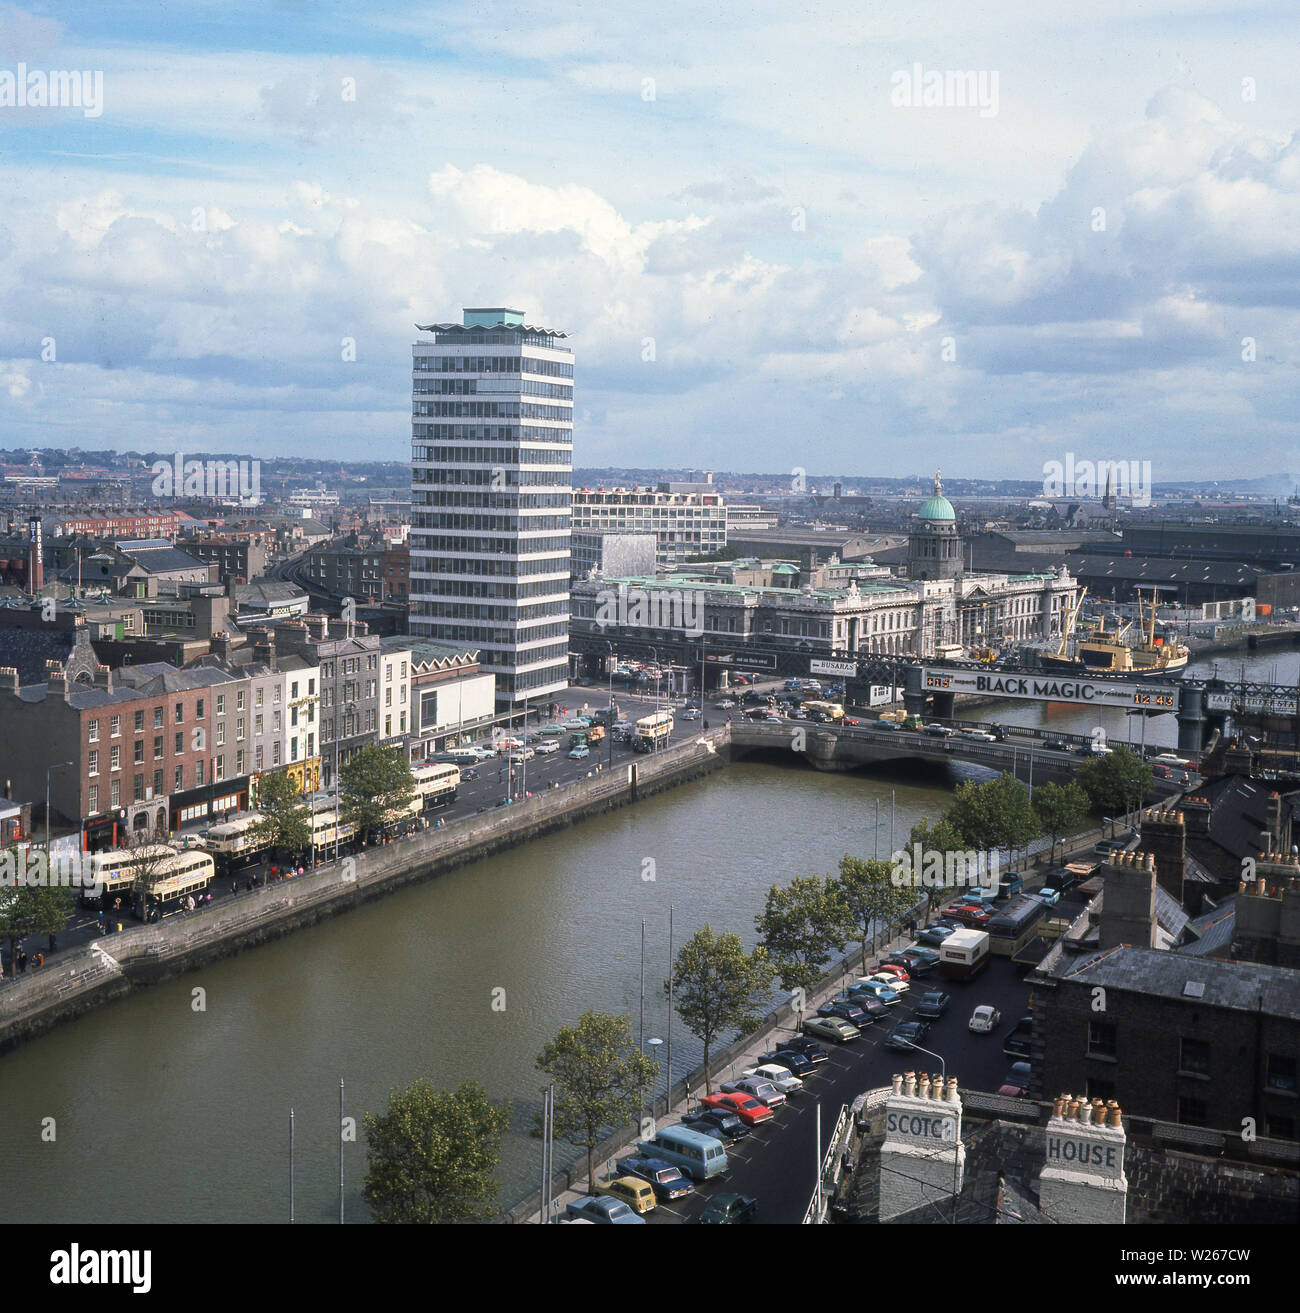 1960s, historical, a view over the skyline of Dublin, Ireland, showing traditional buildings and Liberty Hall, a high-rise modern office block, the river Liffey, the green dome of the Custom House, advertising billboards and double-decker buses. - Stock Image